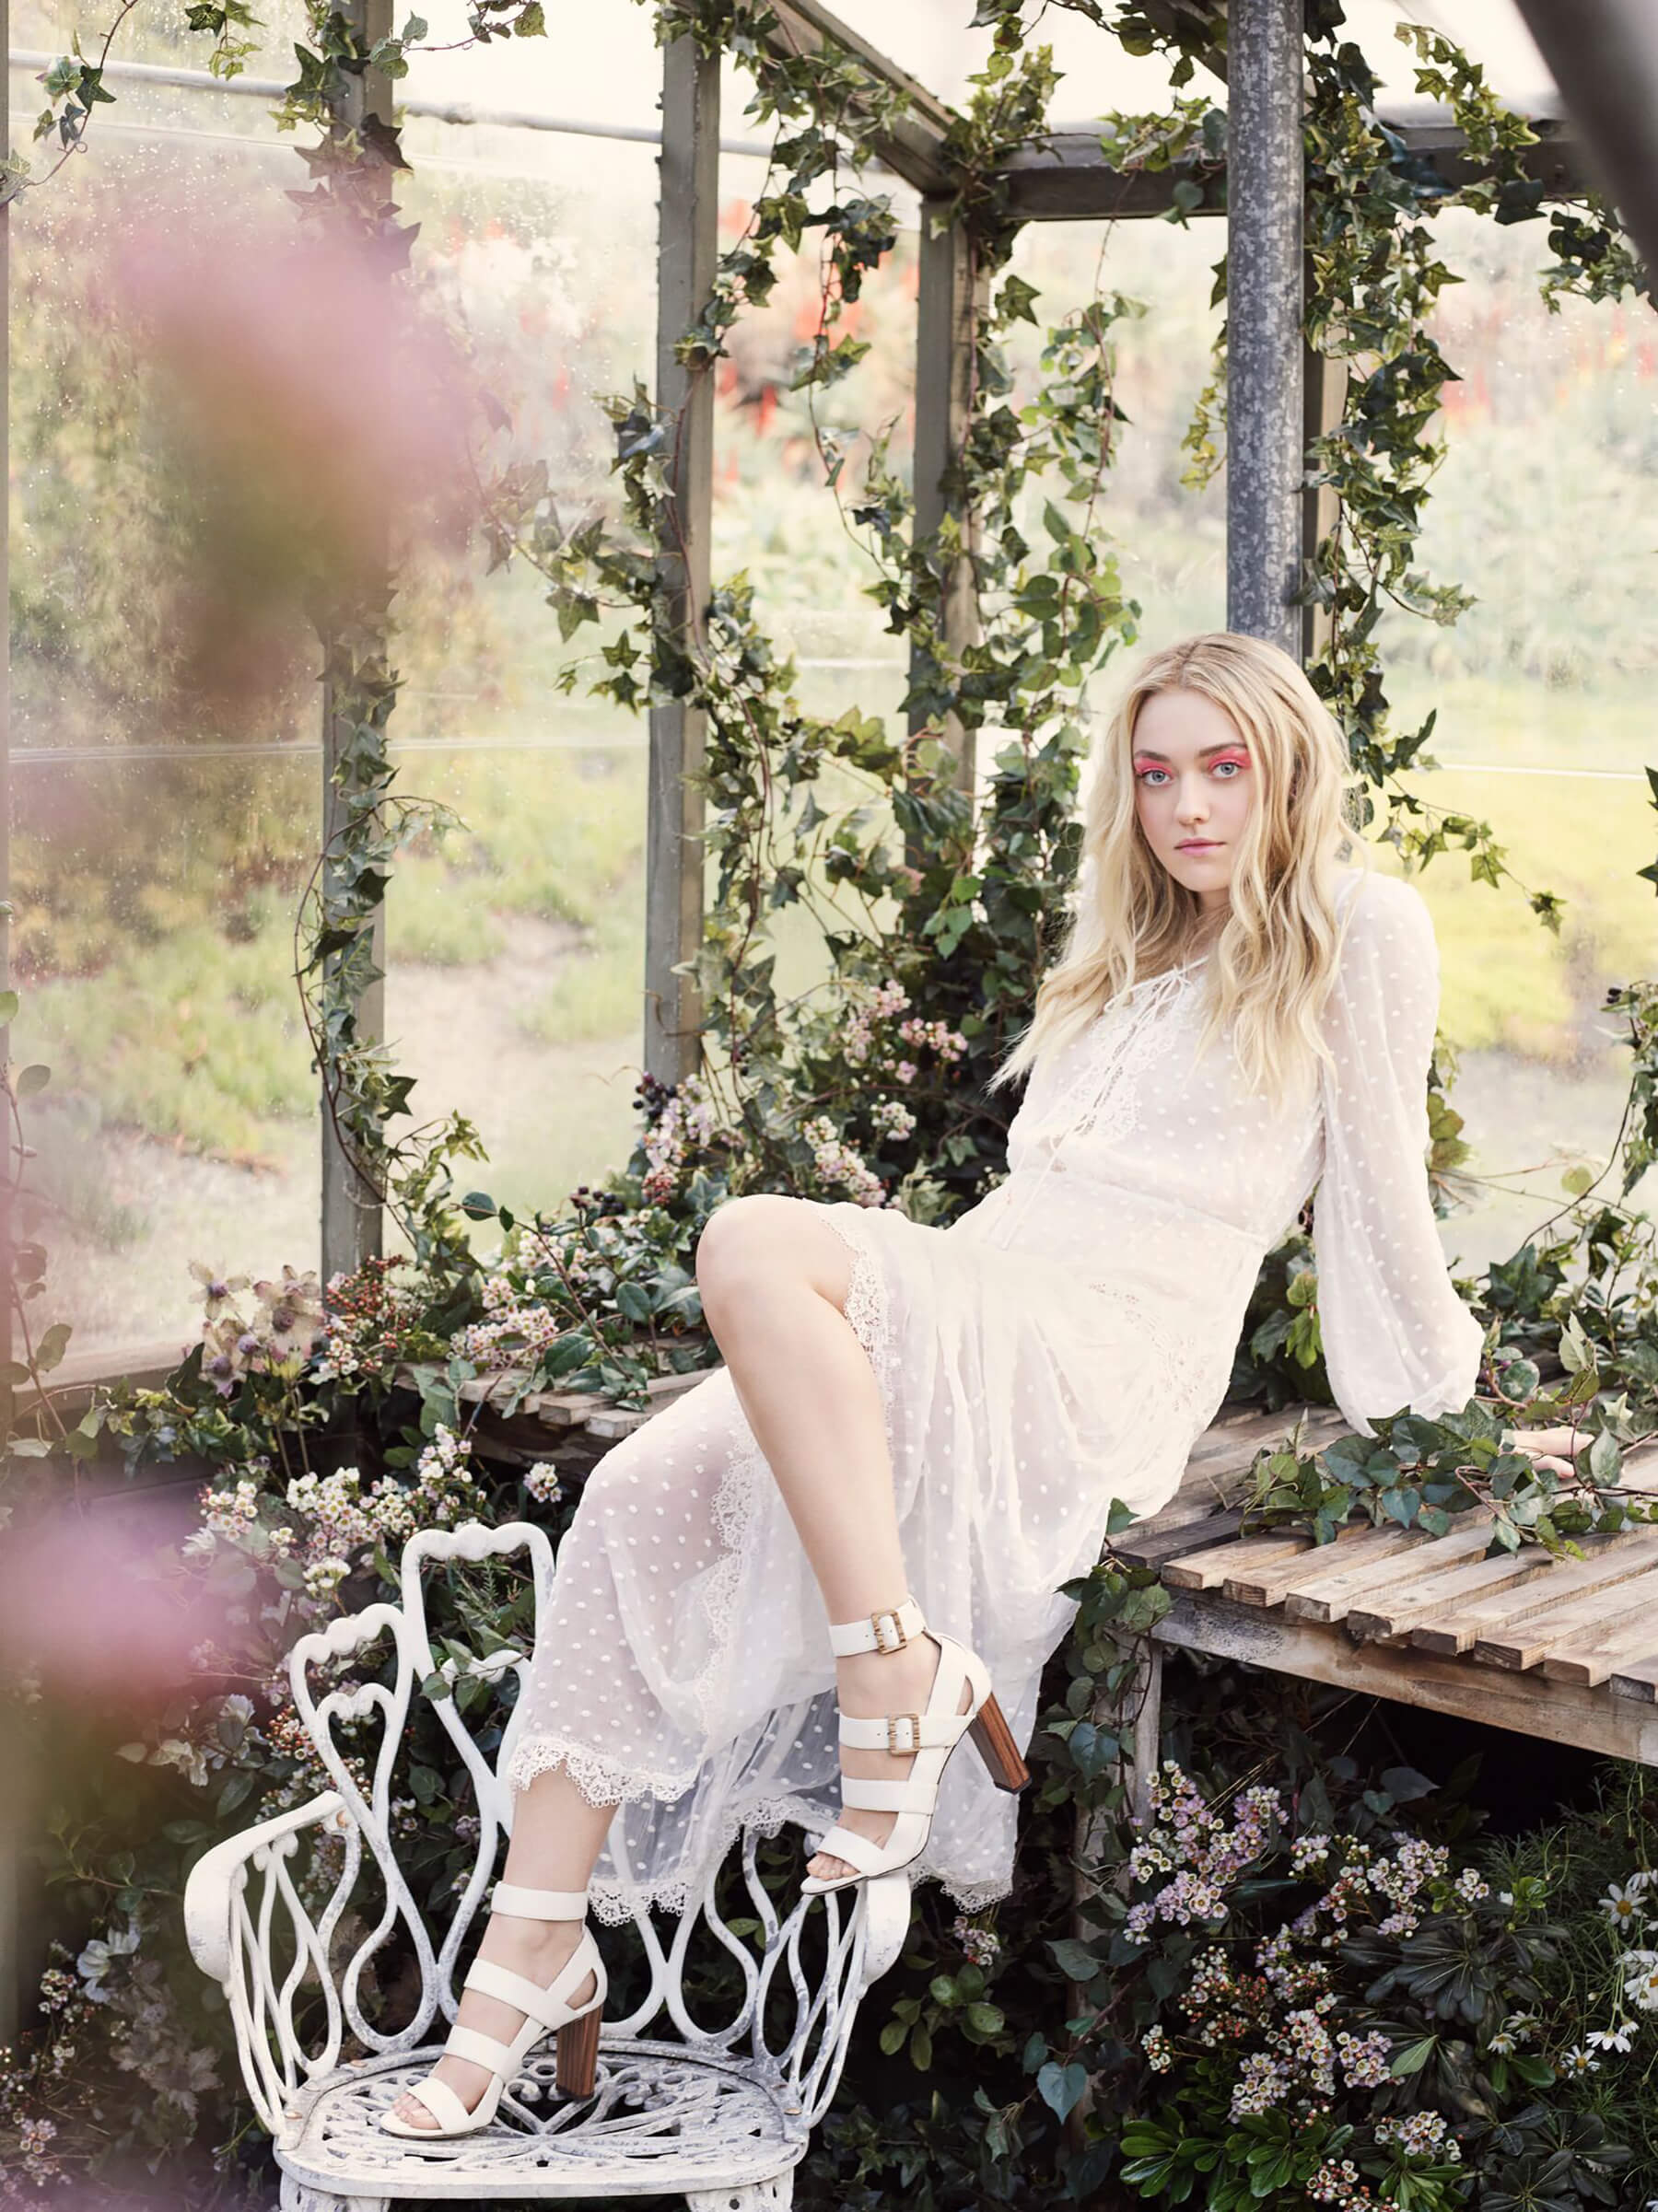 JIMMY CHOO SS17 STYLE DIARY DAKOTA FANNING WEARING THE MAYA SHOE (1)_preview.jpeg